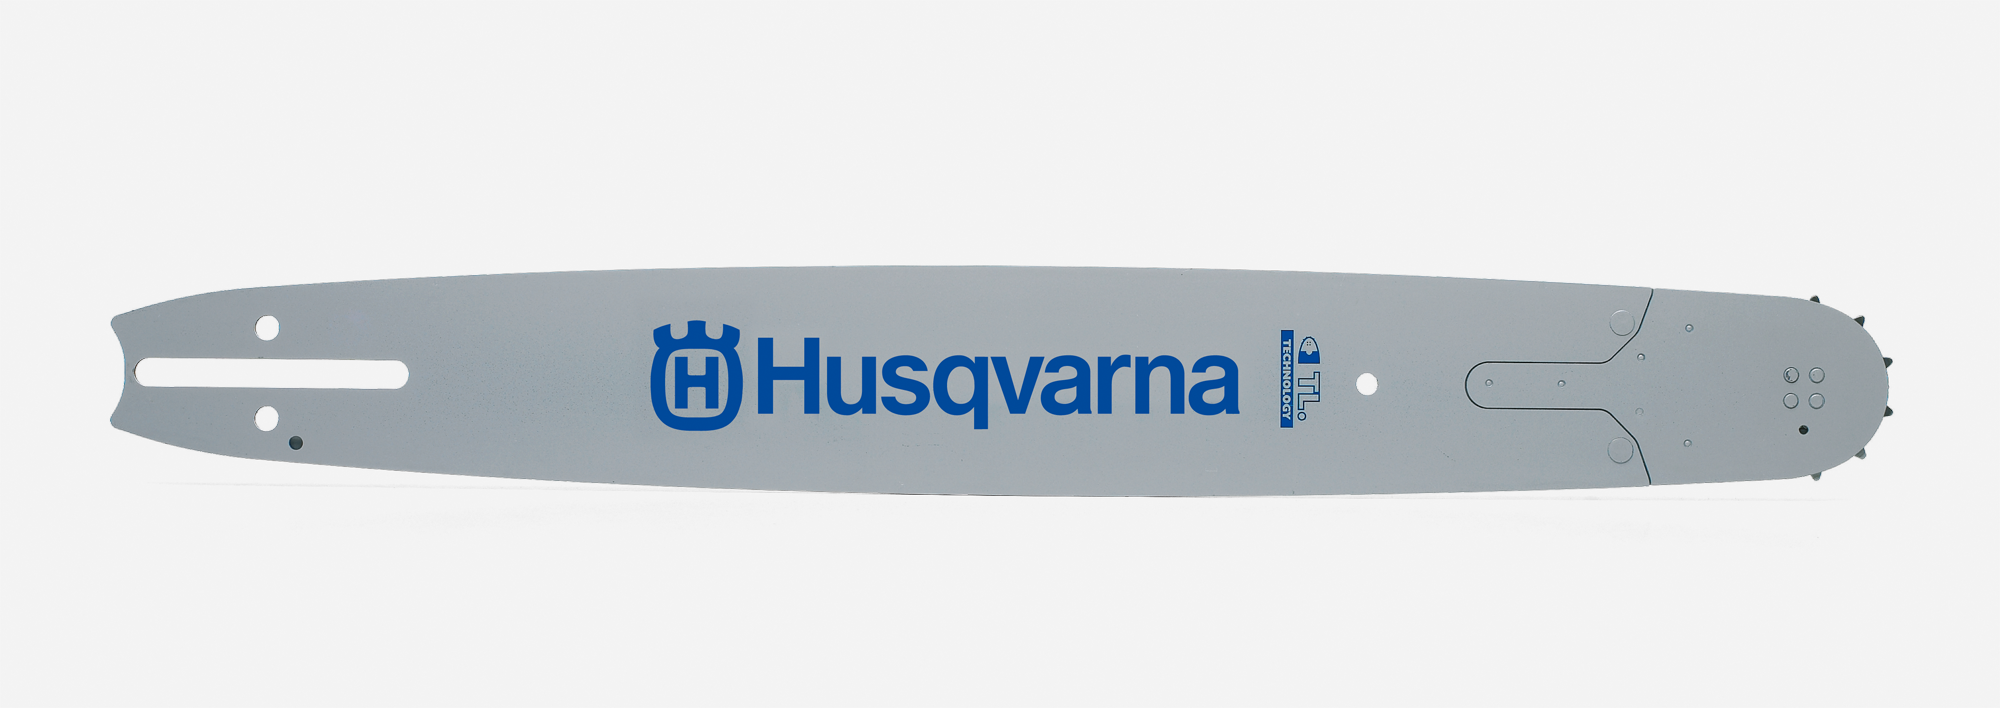 Image for HT280-60/68/72/84 Chainsaw Bars                                                                                                  from HusqvarnaB2C